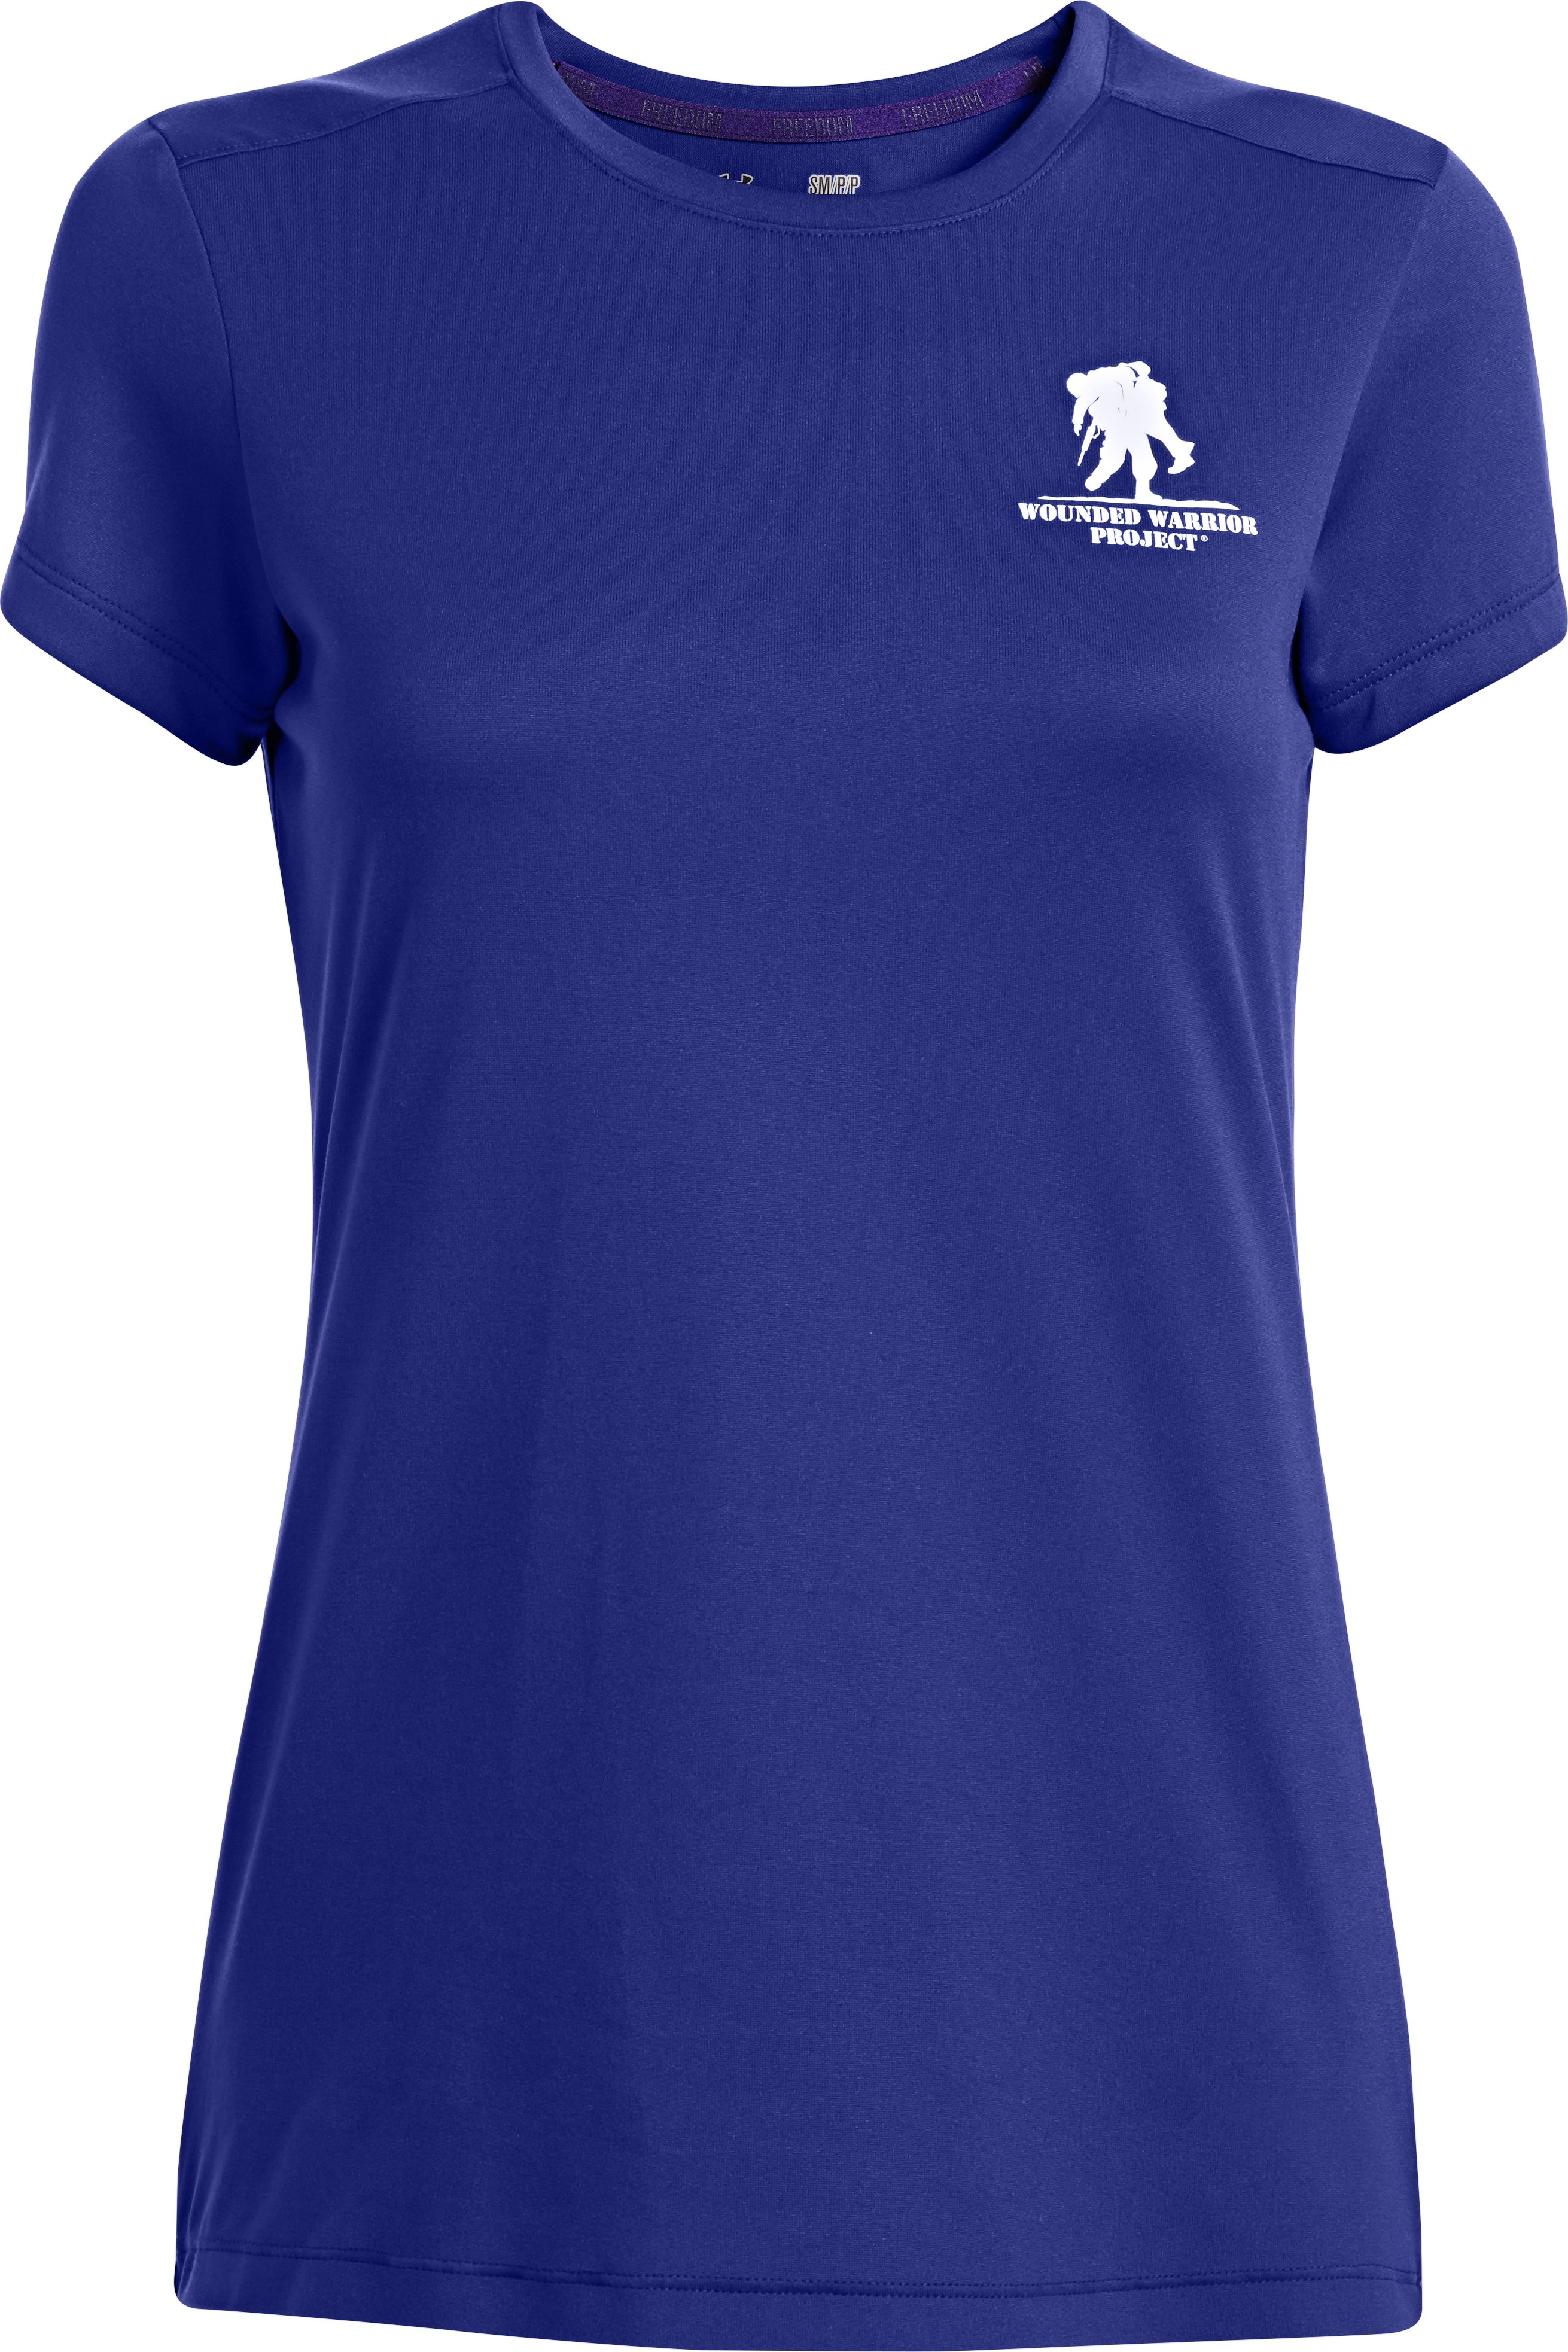 Women's WWP UA Tech™ T-Shirt, SIBERIAN IRIS, undefined